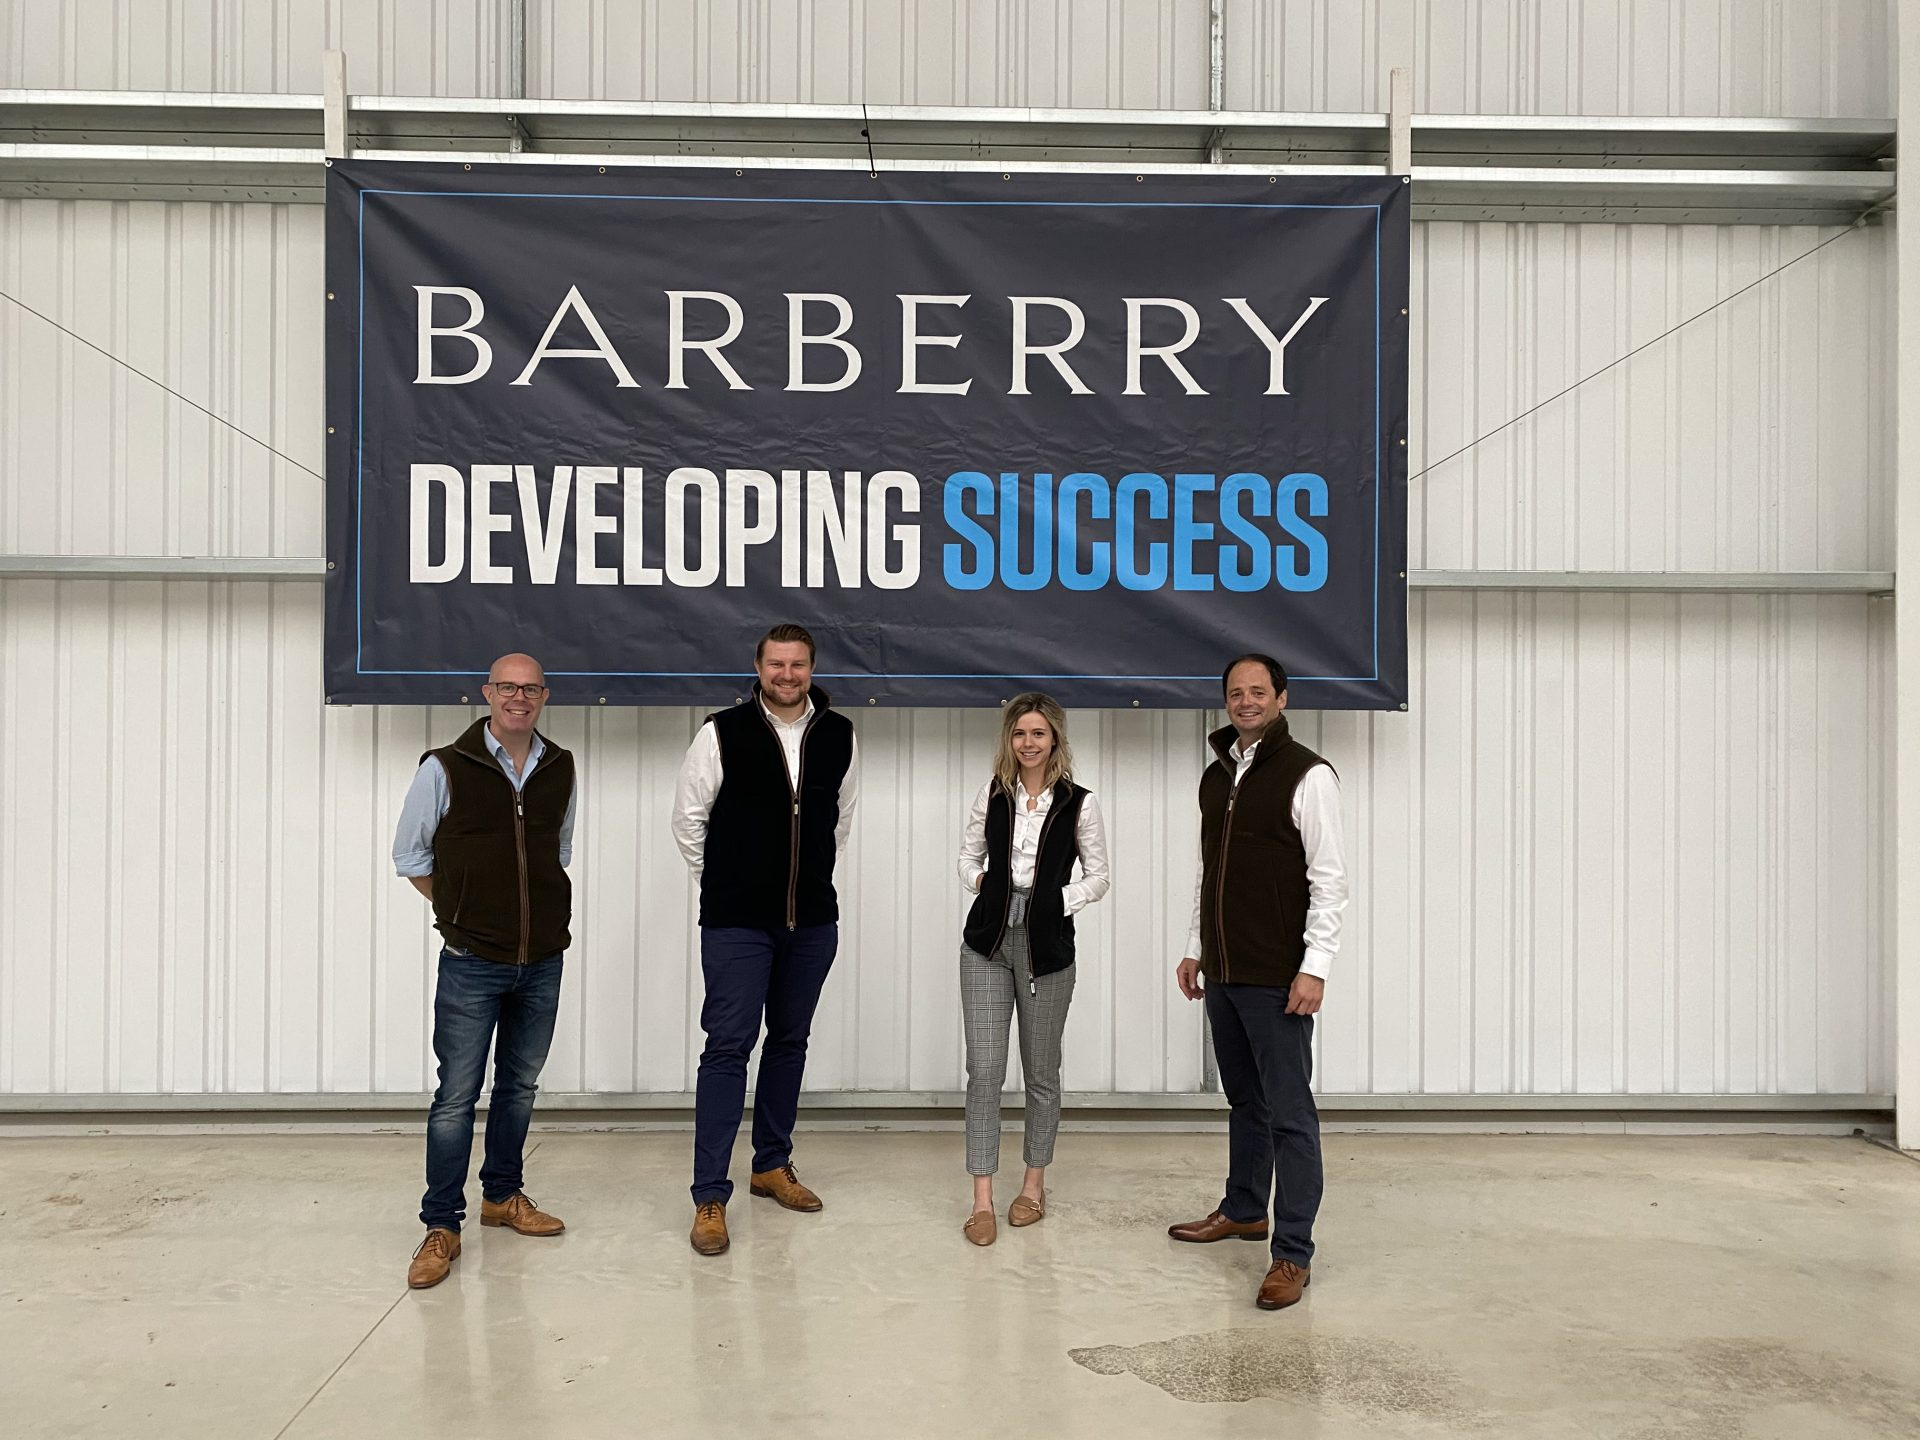 Pictured at the warehouse are (from left) Jonathan Mott, Jonathan Robinson, Emilie Douglas, and Henry Bellfield of Barberry.